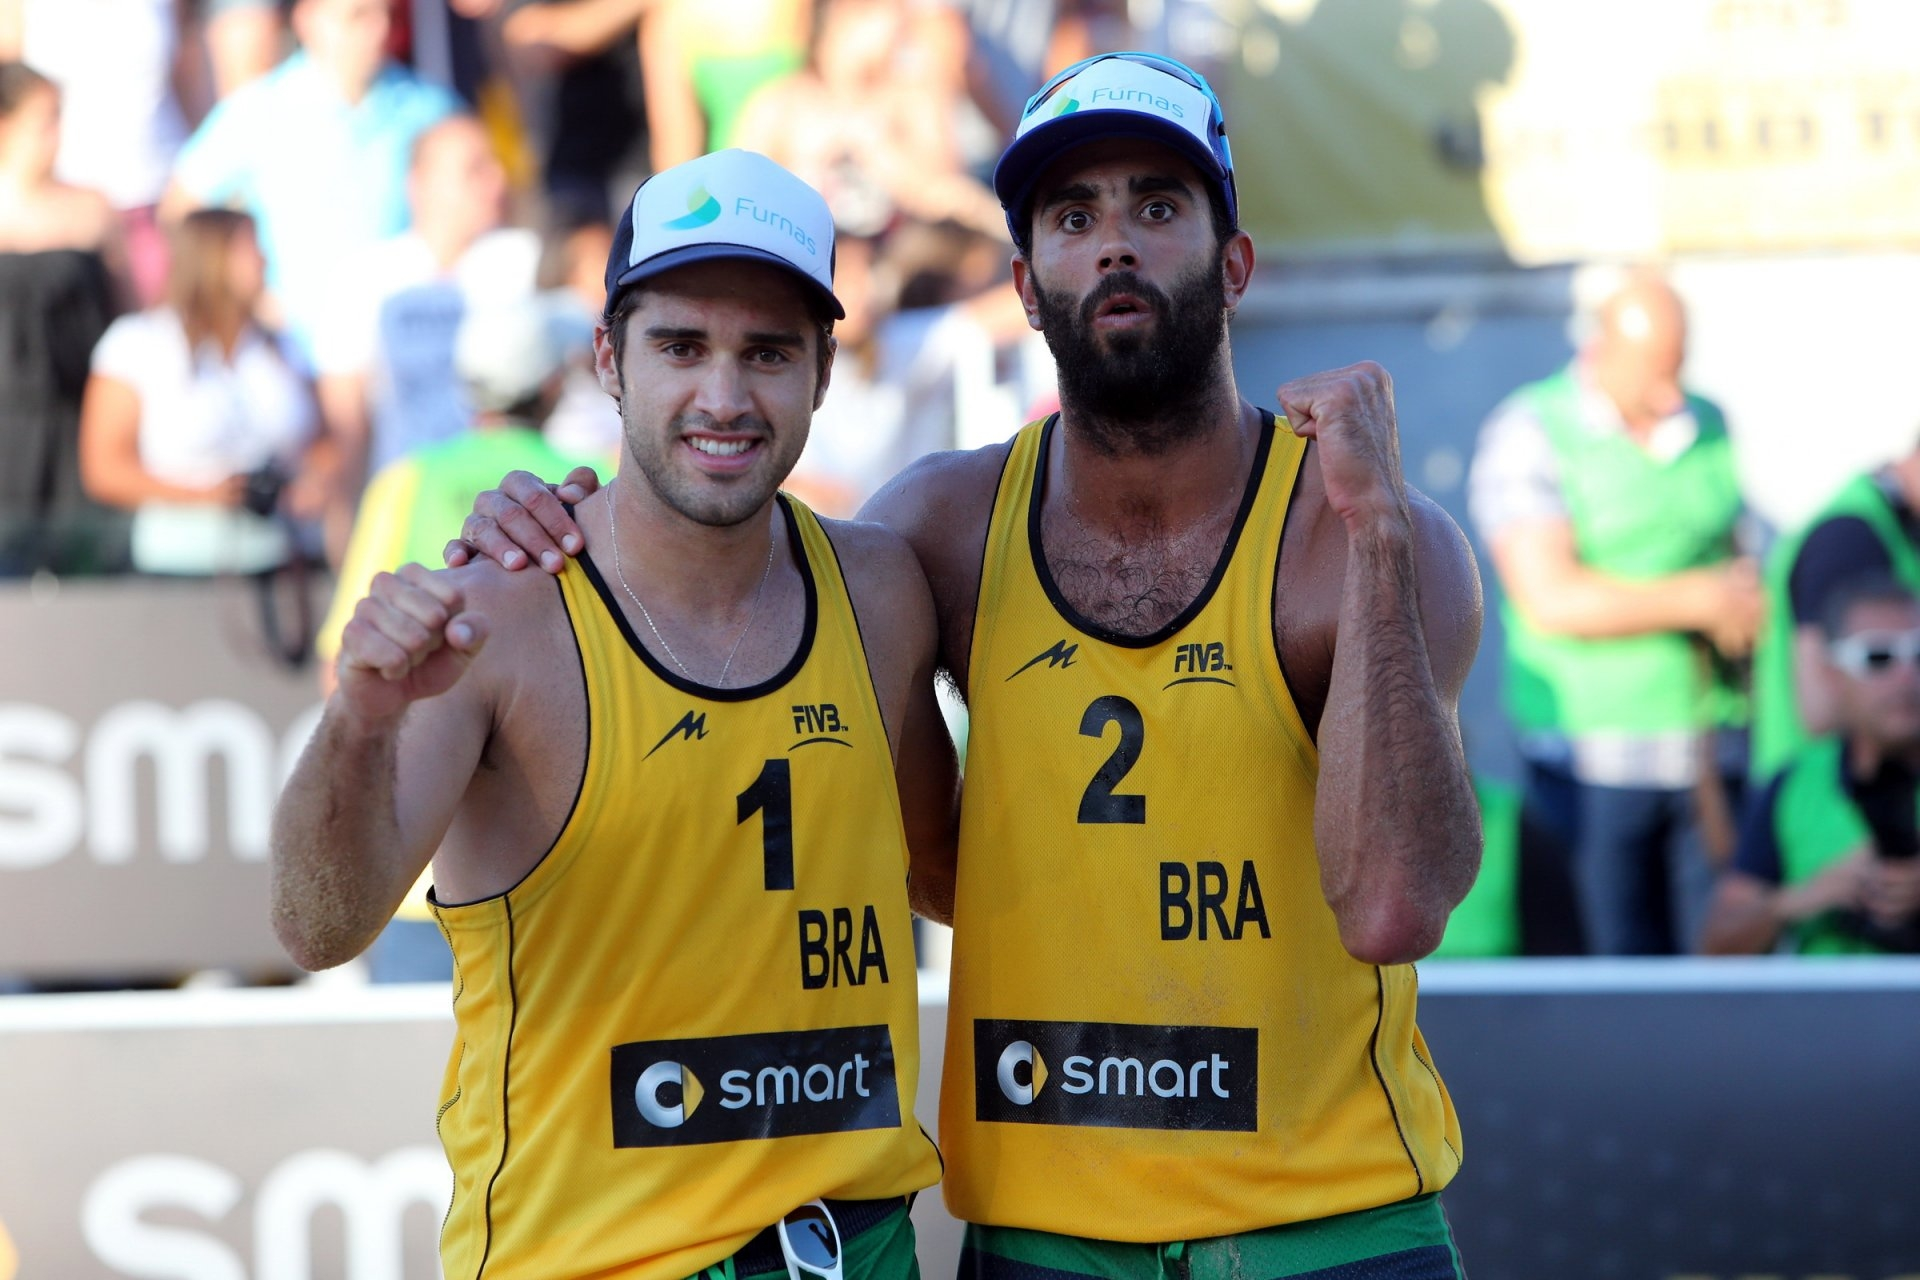 Bruno and Pedro enjoyed success in their first sting together and are looking forward to more (Photocredit: FIVB)